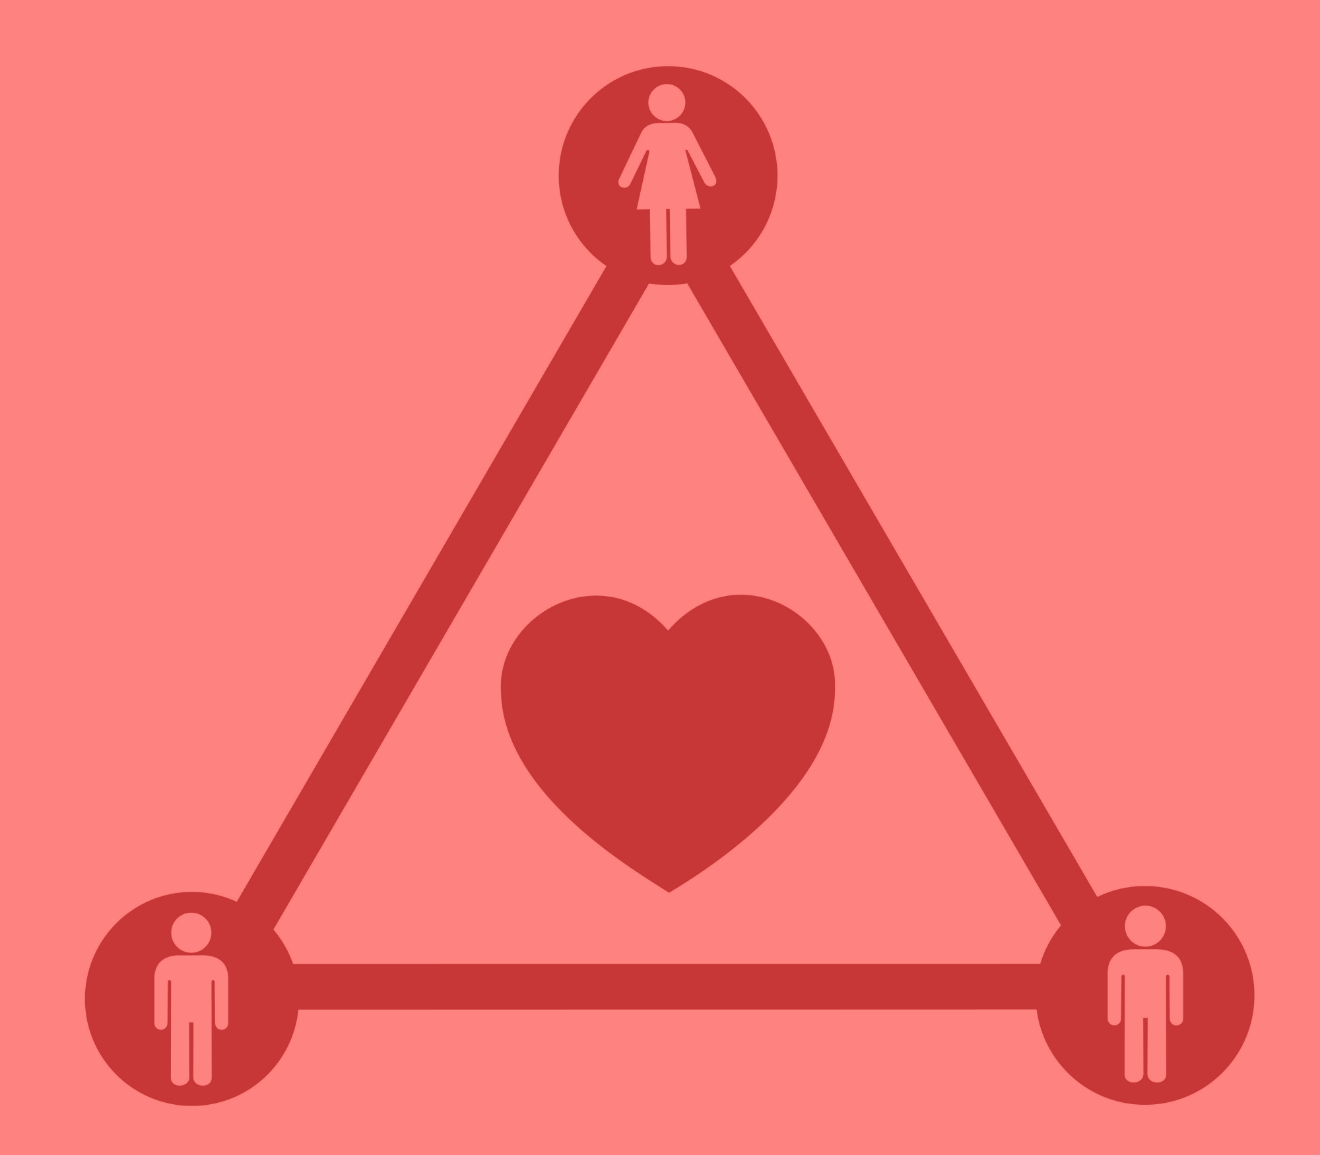 polyamory love triangle illustration